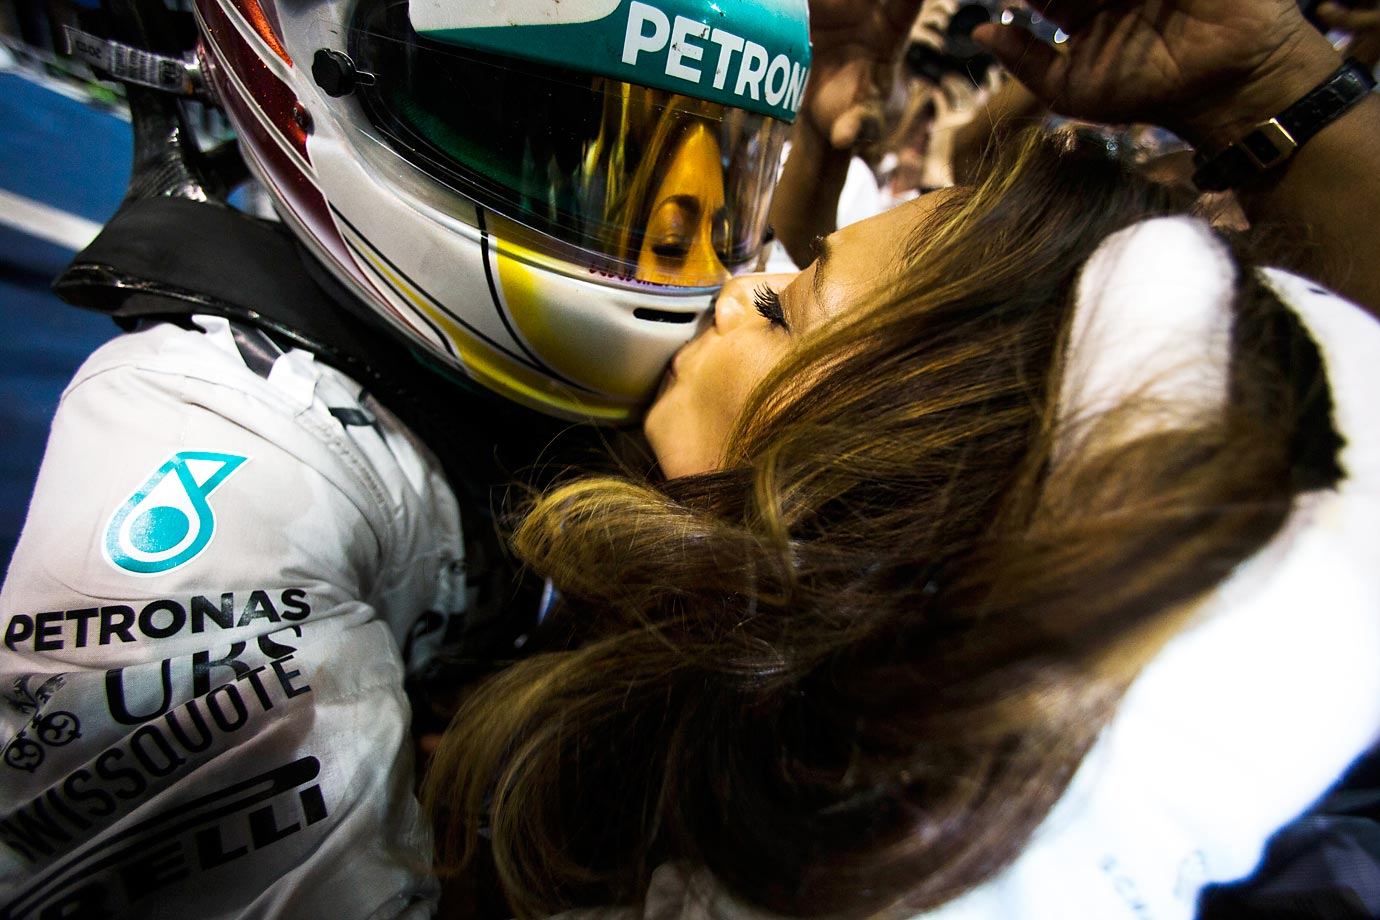 Lewis Hamilton's helmet receives a smooch from his girlfriend, Nicole Scherzinger, after he won the Formula One World Championship in Abu Dhabi.